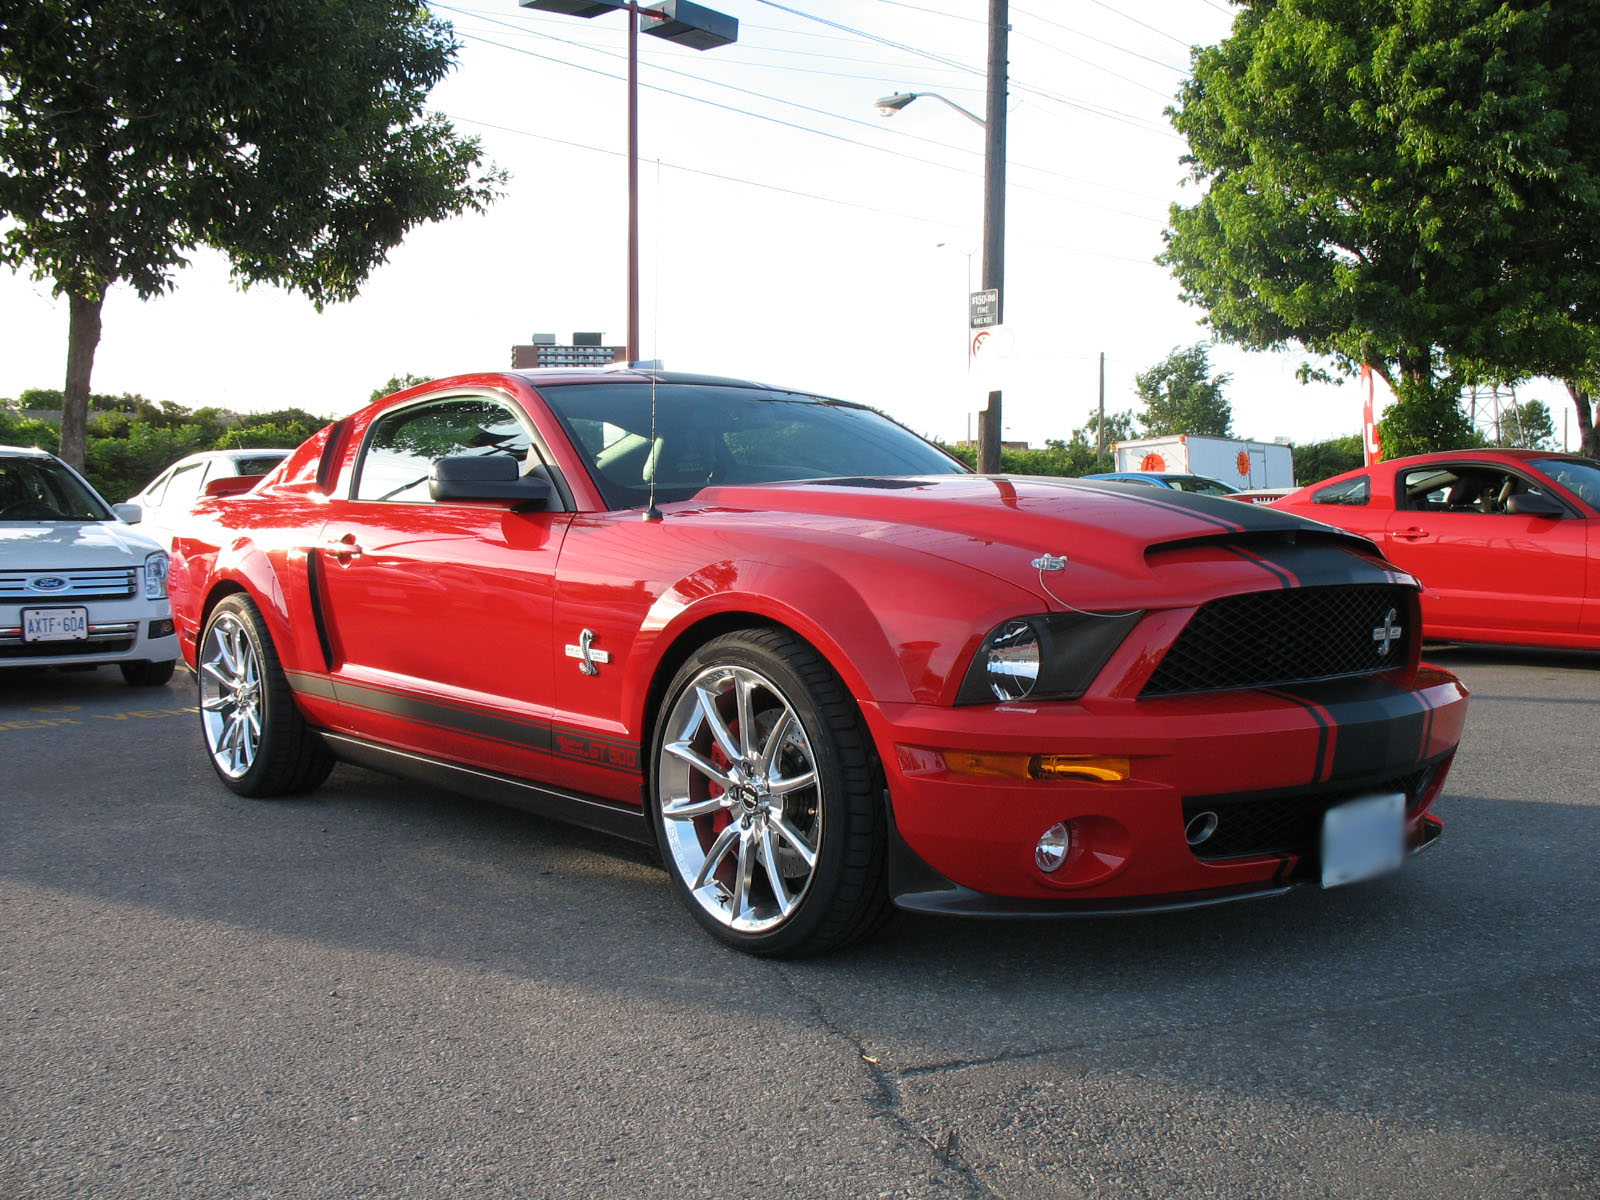 Mustang Shelby GT500 Super Snake for Sale